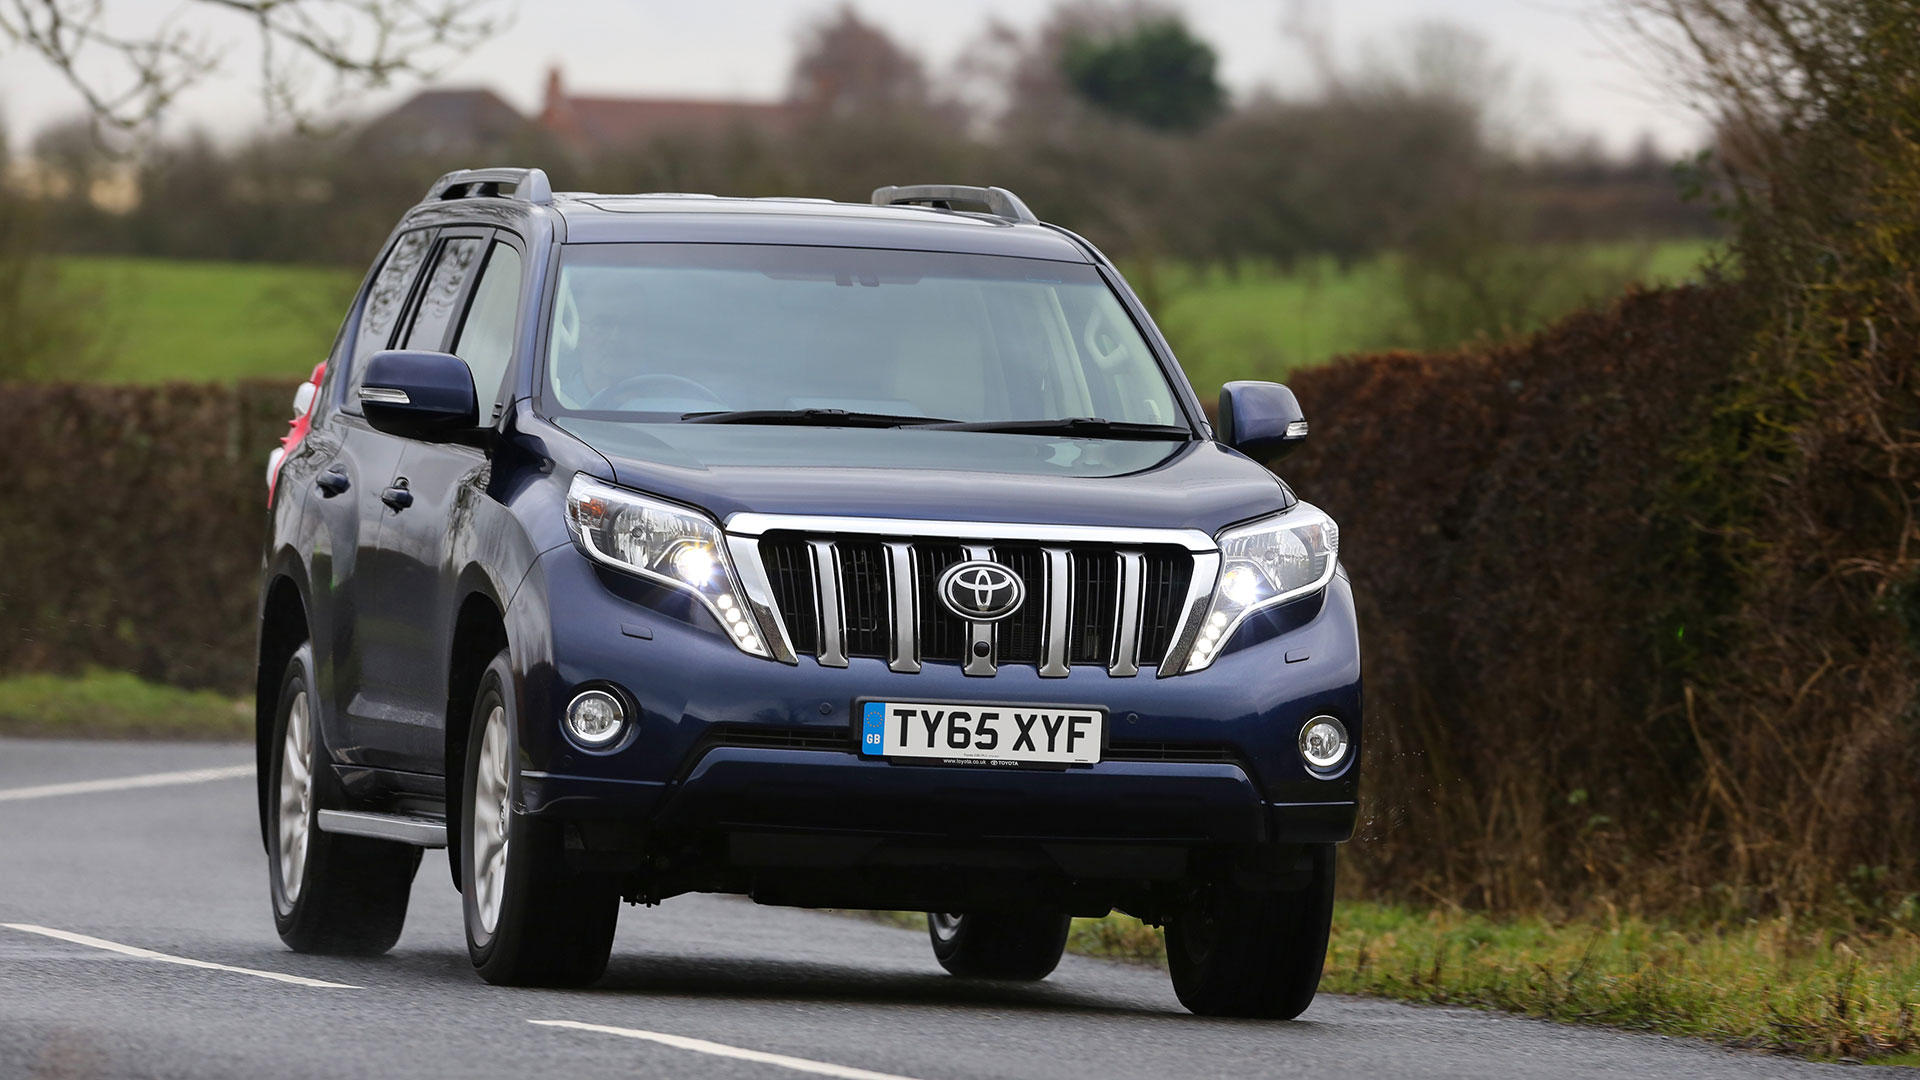 Find Used Toyota Land Cruiser Cars for Sale on Auto Trader UK